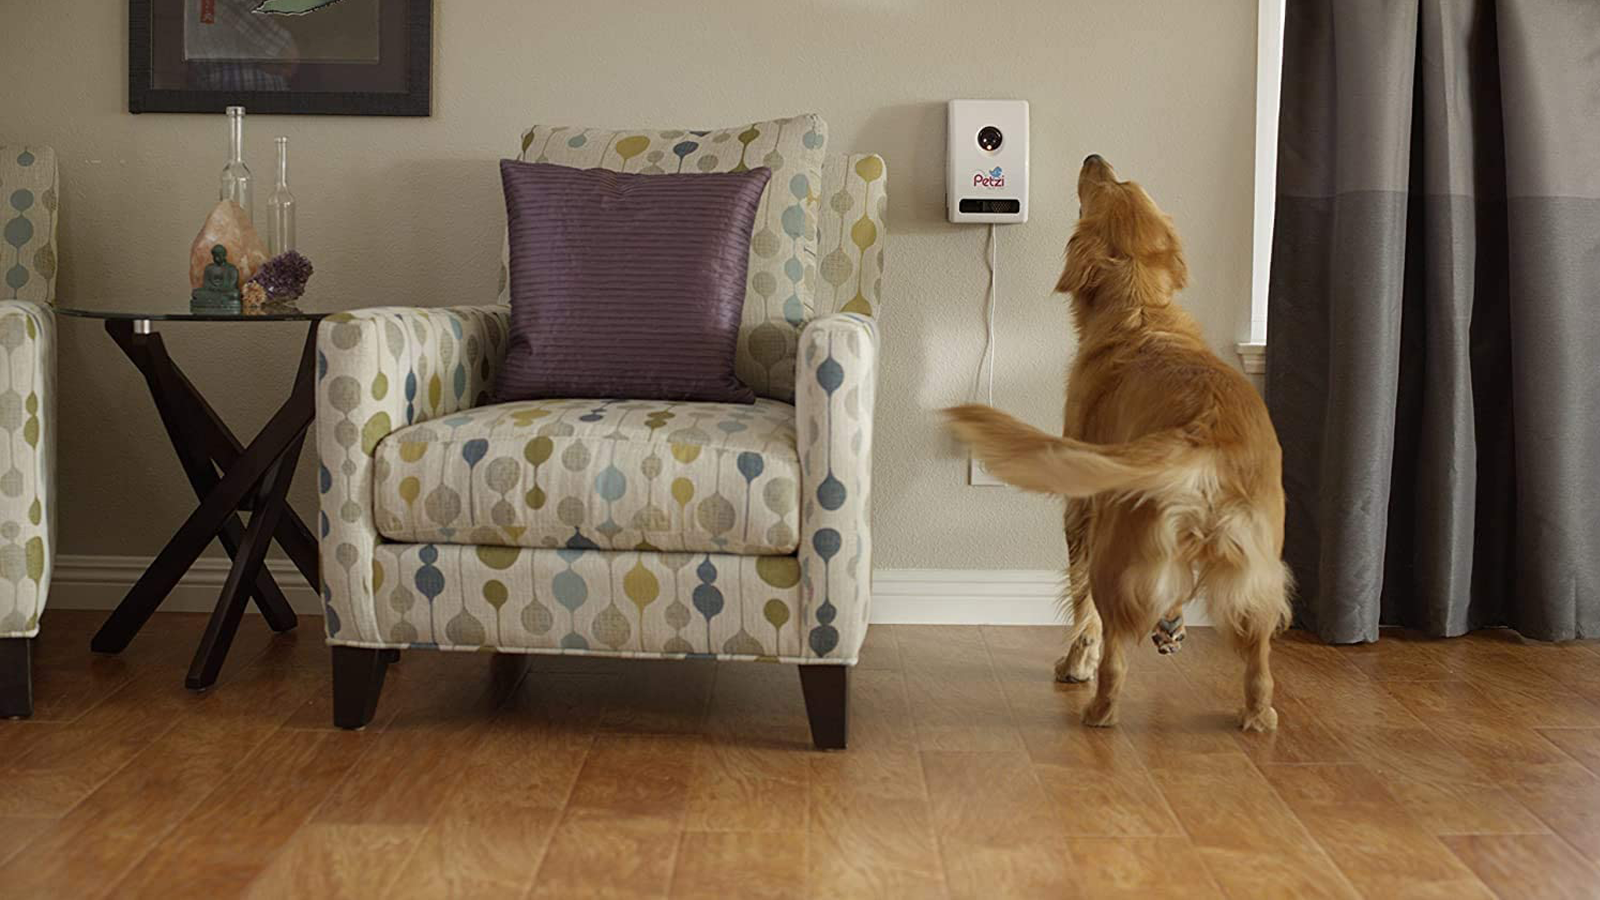 Petzi treat cam mounted to a wall with a dog looking at it